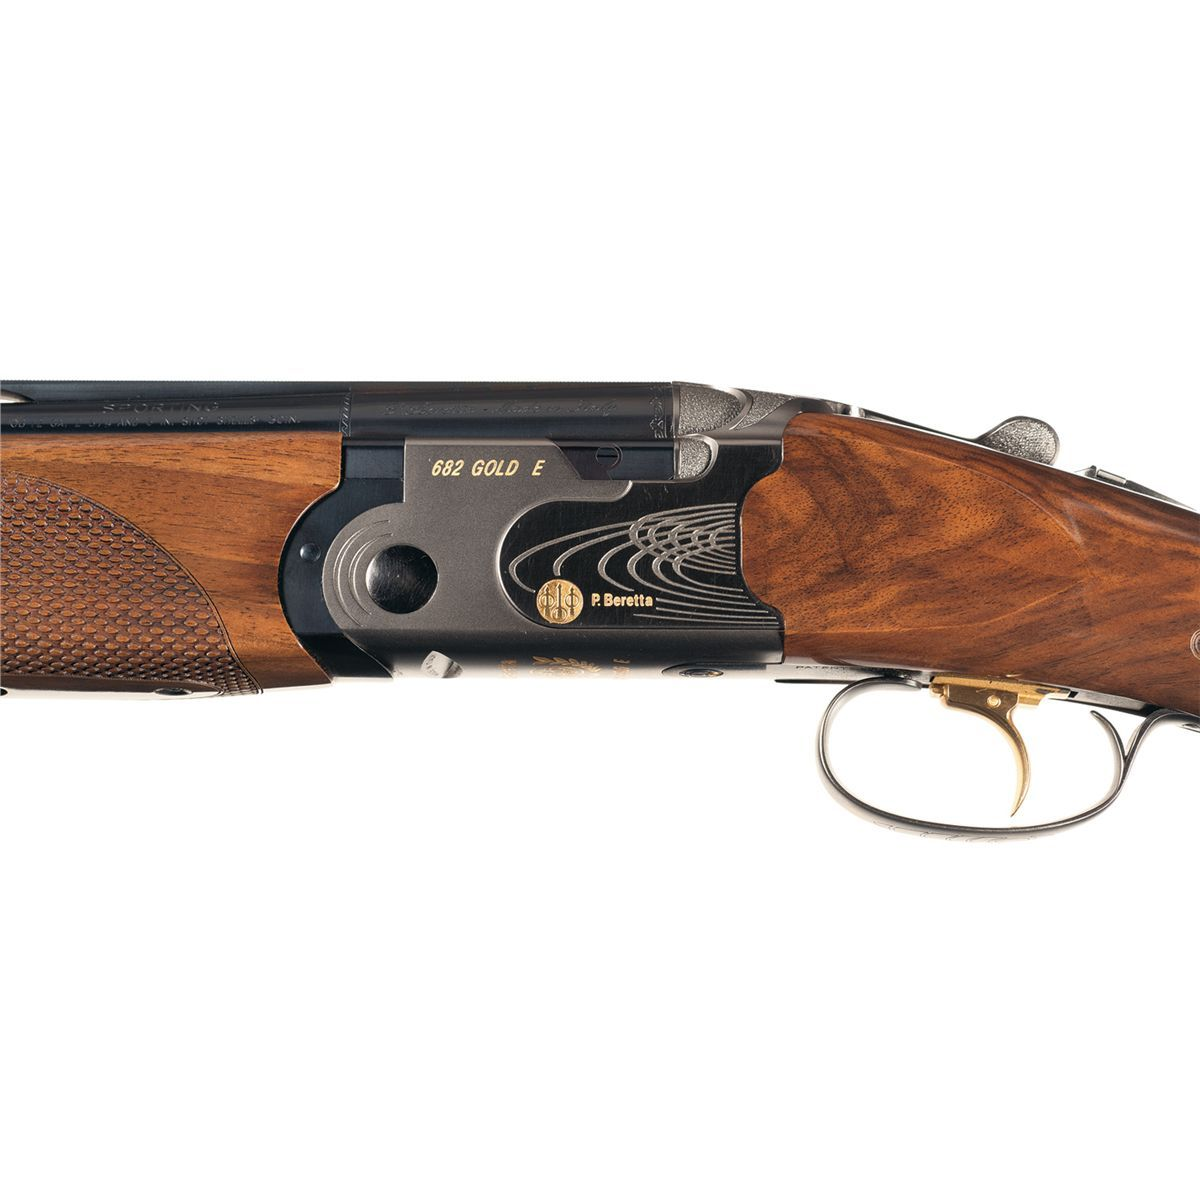 Beretta 682 Gold E Sportingmight Need To Save My Pennies Up